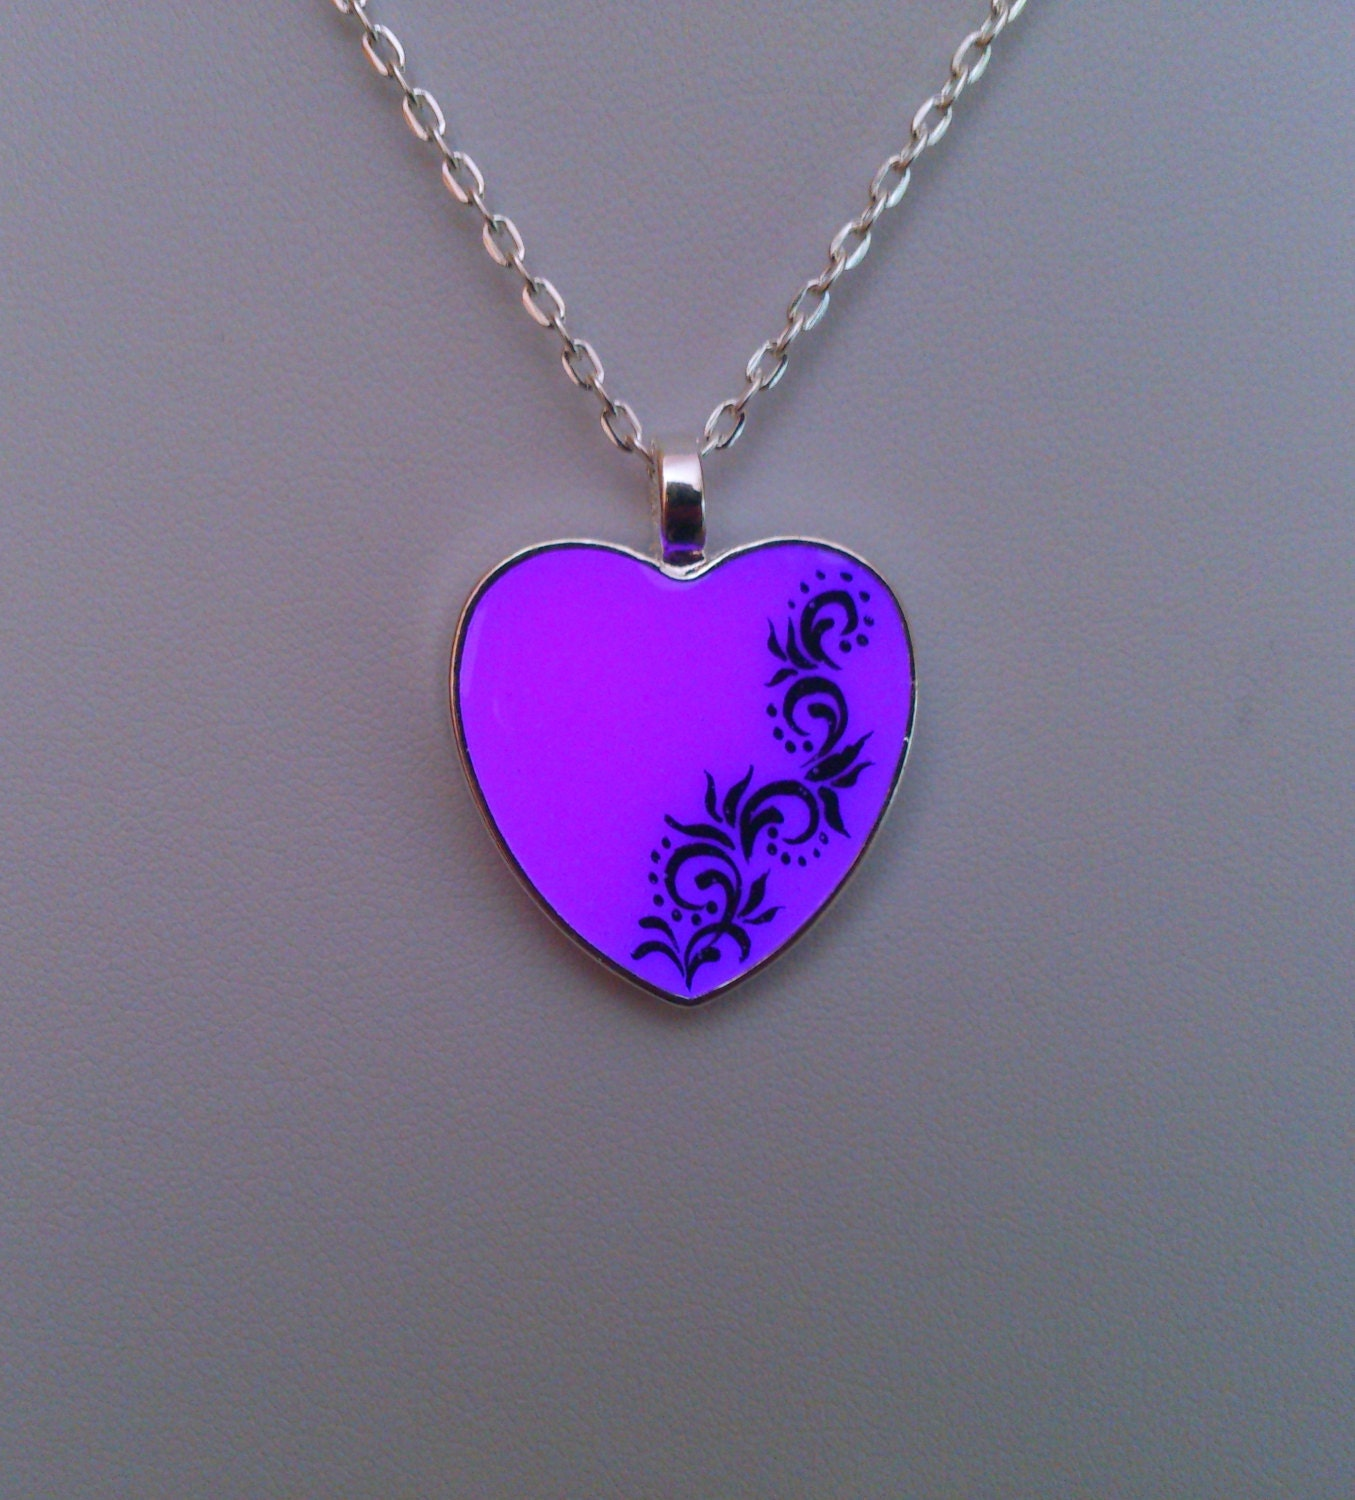 purple glow necklace necklace gift glow